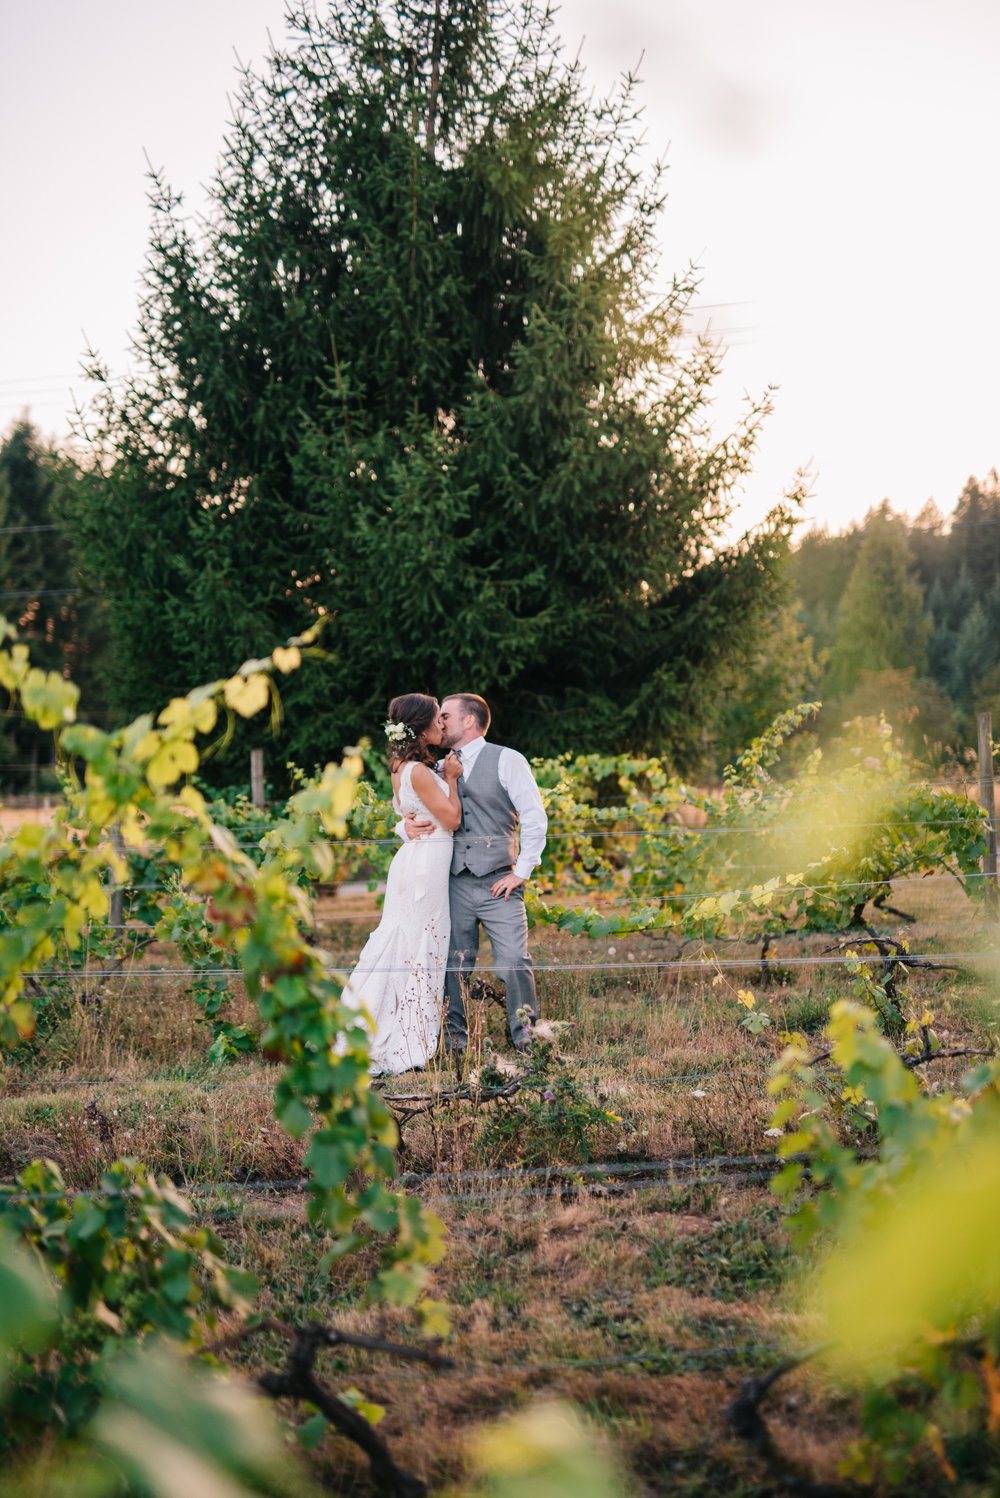 Wedding at Rusty Grape Vineyard Portland, Oregon